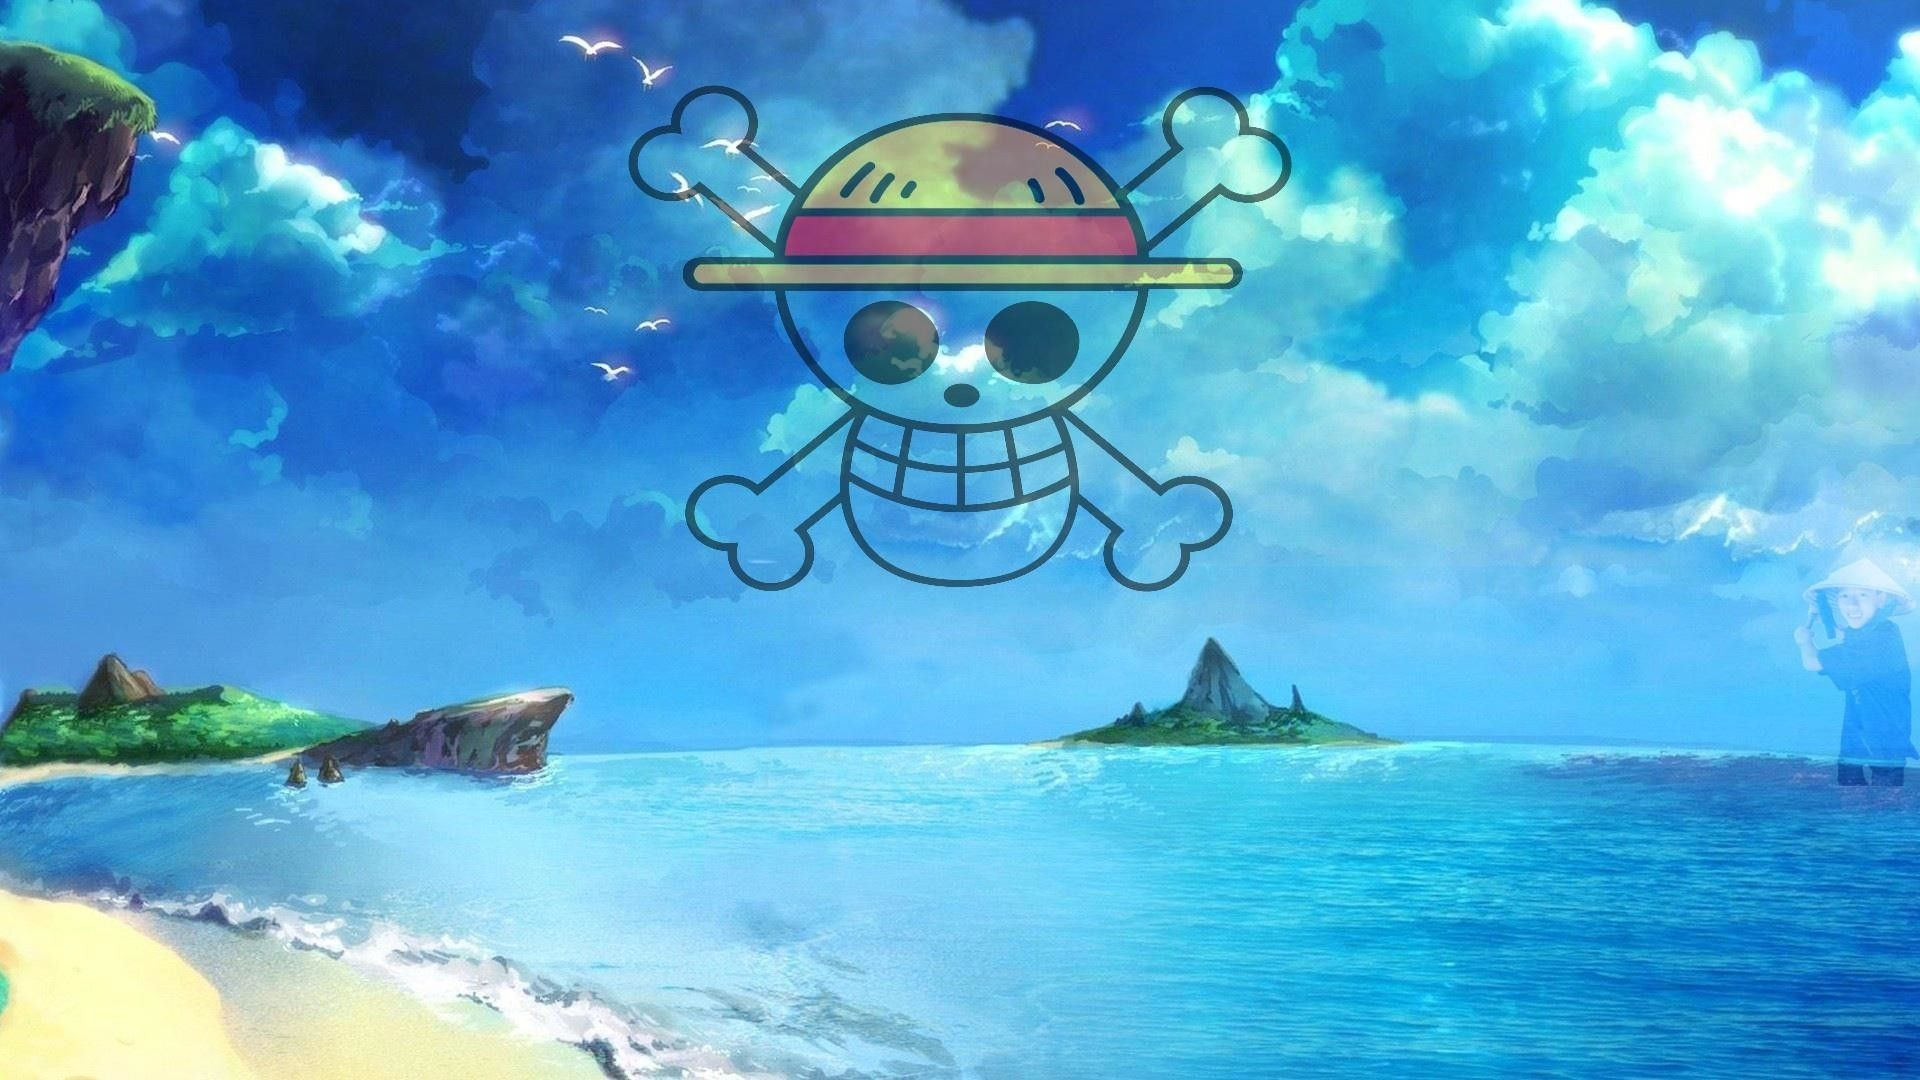 Download wallpaper one piece lucu 110 best wallpapers for samsung galaxy s10 plus s10 and one pie samsung galaxy wallpaper wallpaper keren. Thousand Sunny Wallpapers - Top Free Thousand Sunny ...